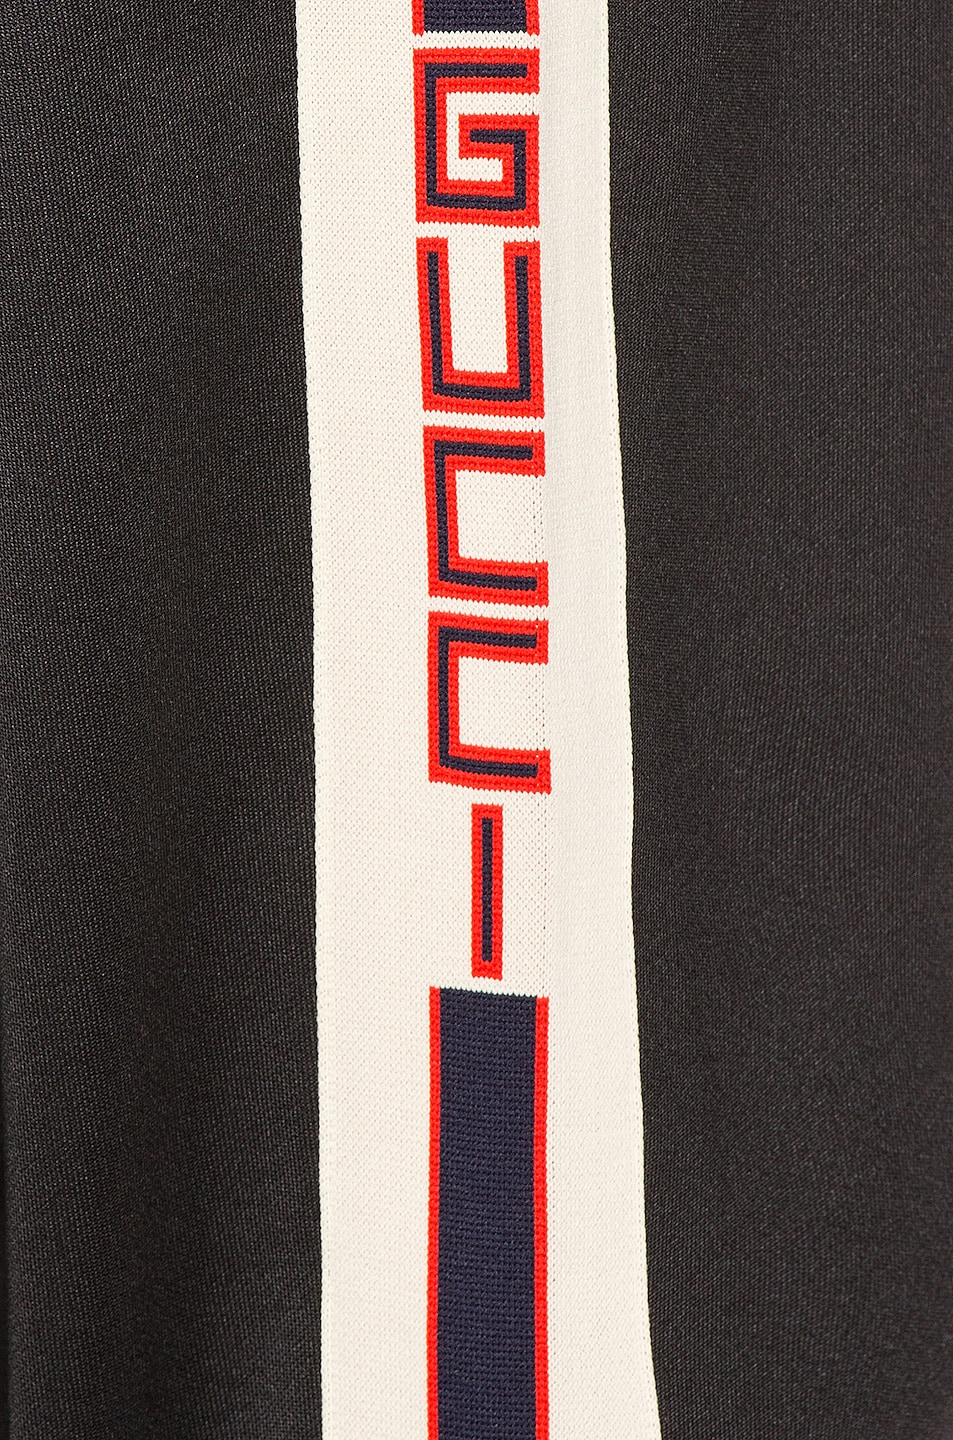 Image 6 of Gucci Technical Jersey Pant in Black & Ivory & Live Red